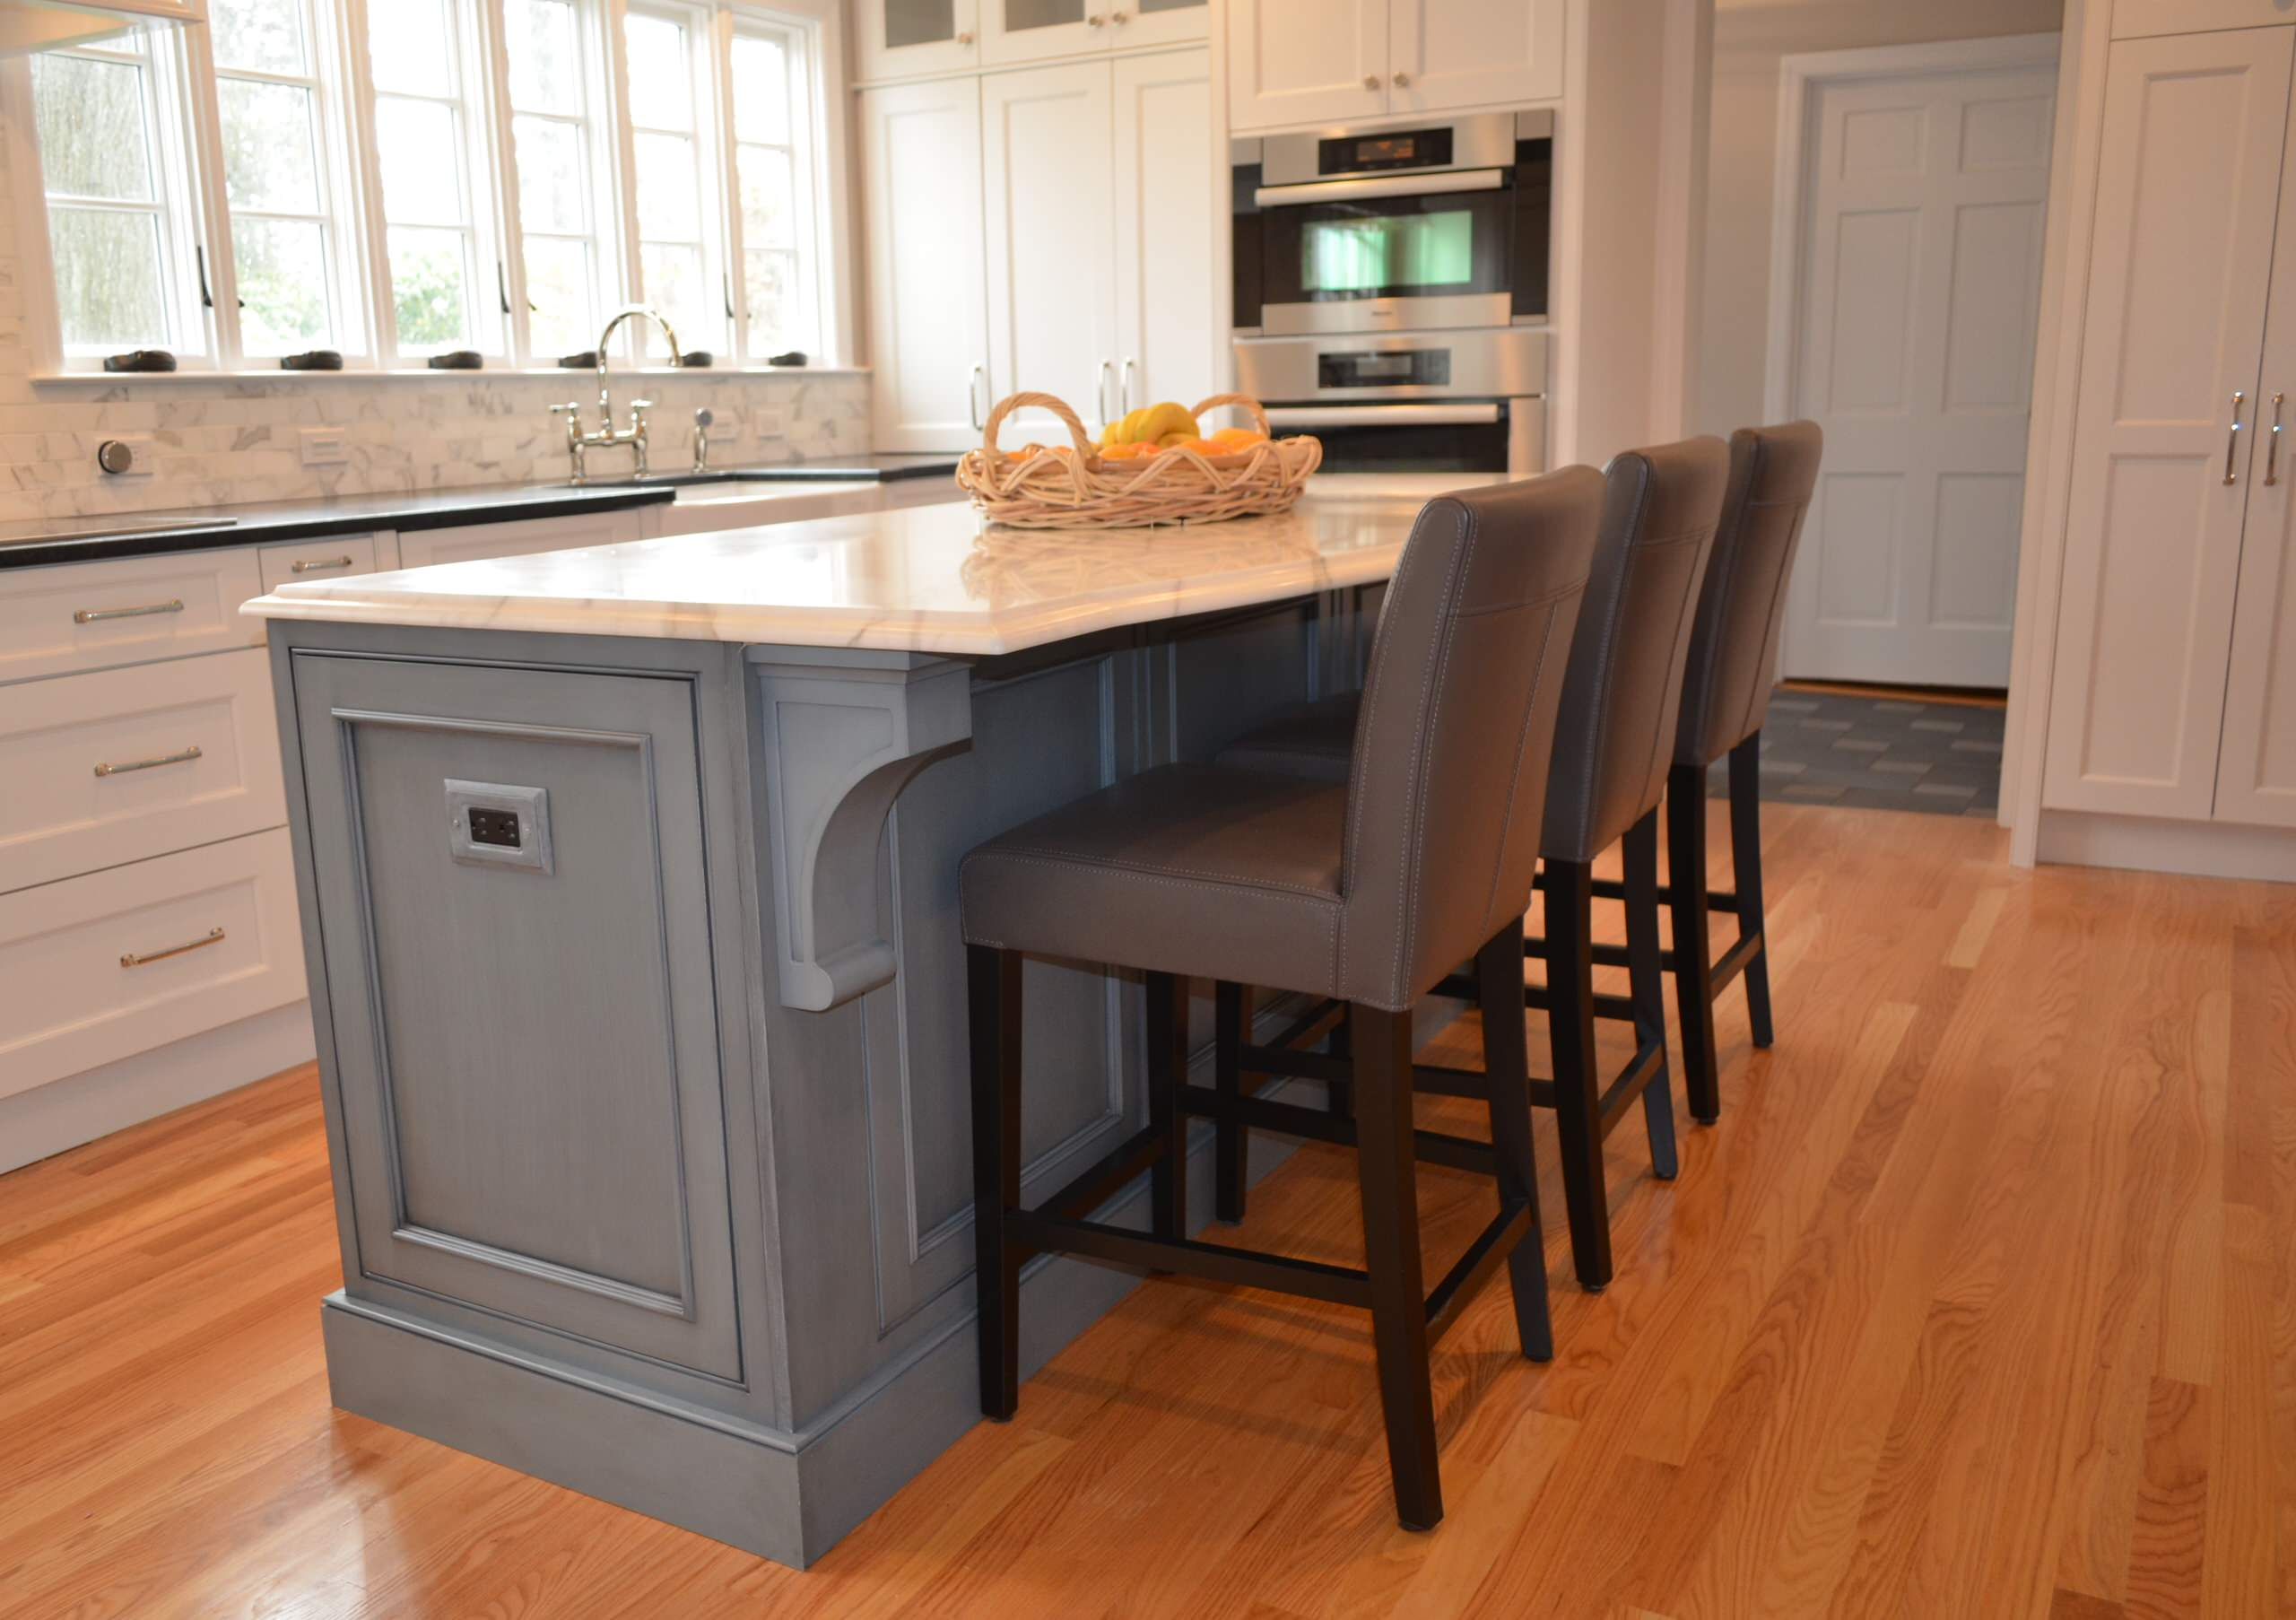 Homage to a beautiful Historic WeHa home